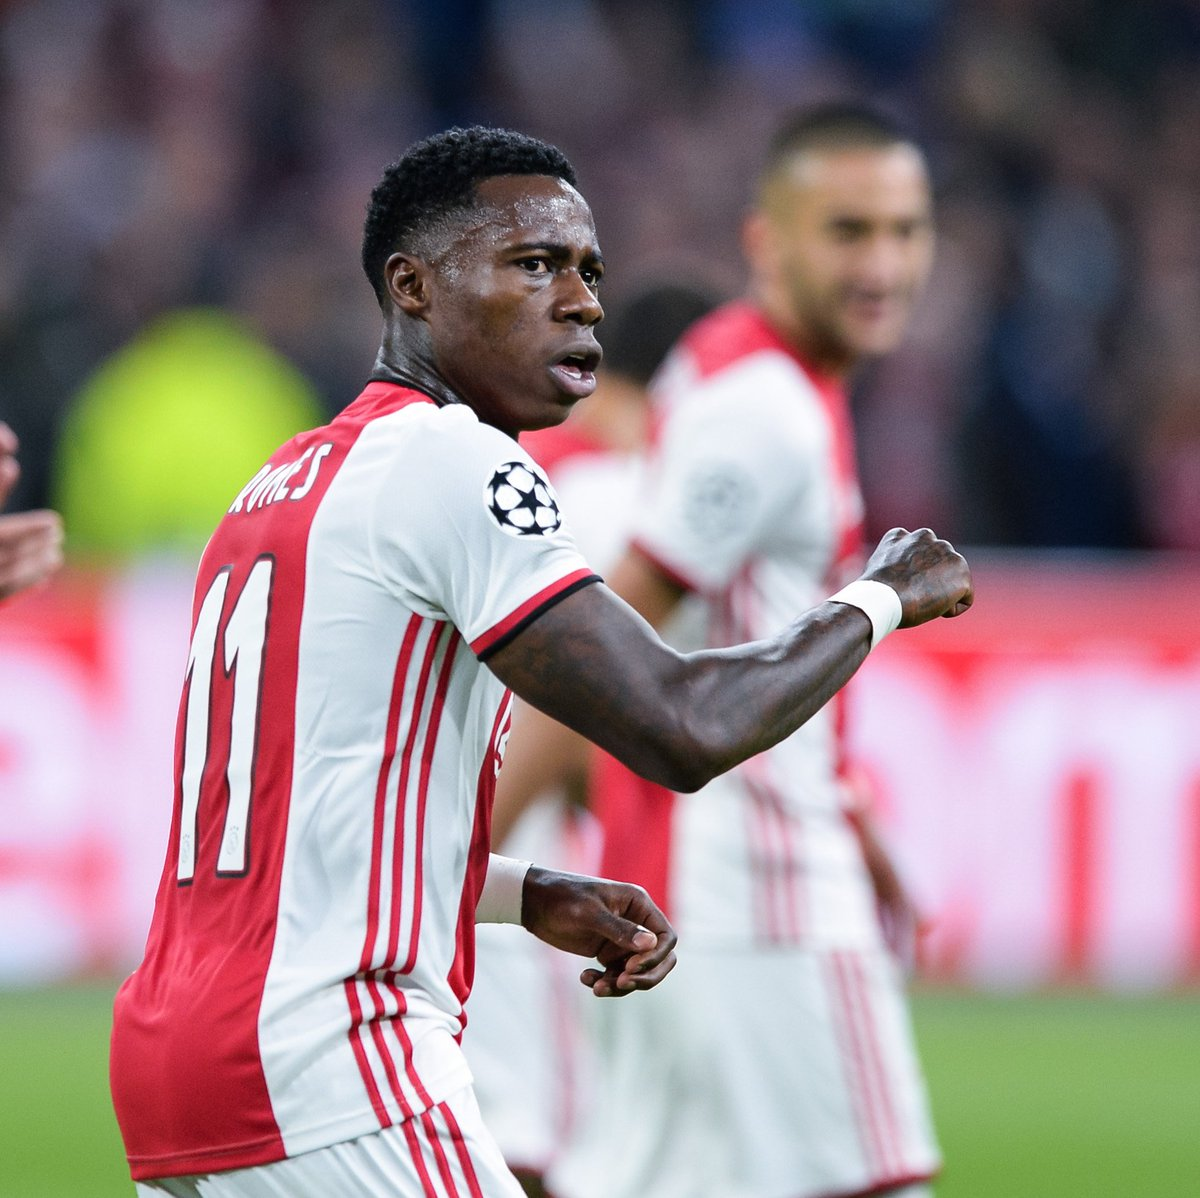 ⚪️🔴⚪️ Ajax have reached the quarter-finals in each of the previous 5 seasons in which they won the 1st group stage game...   #UCL